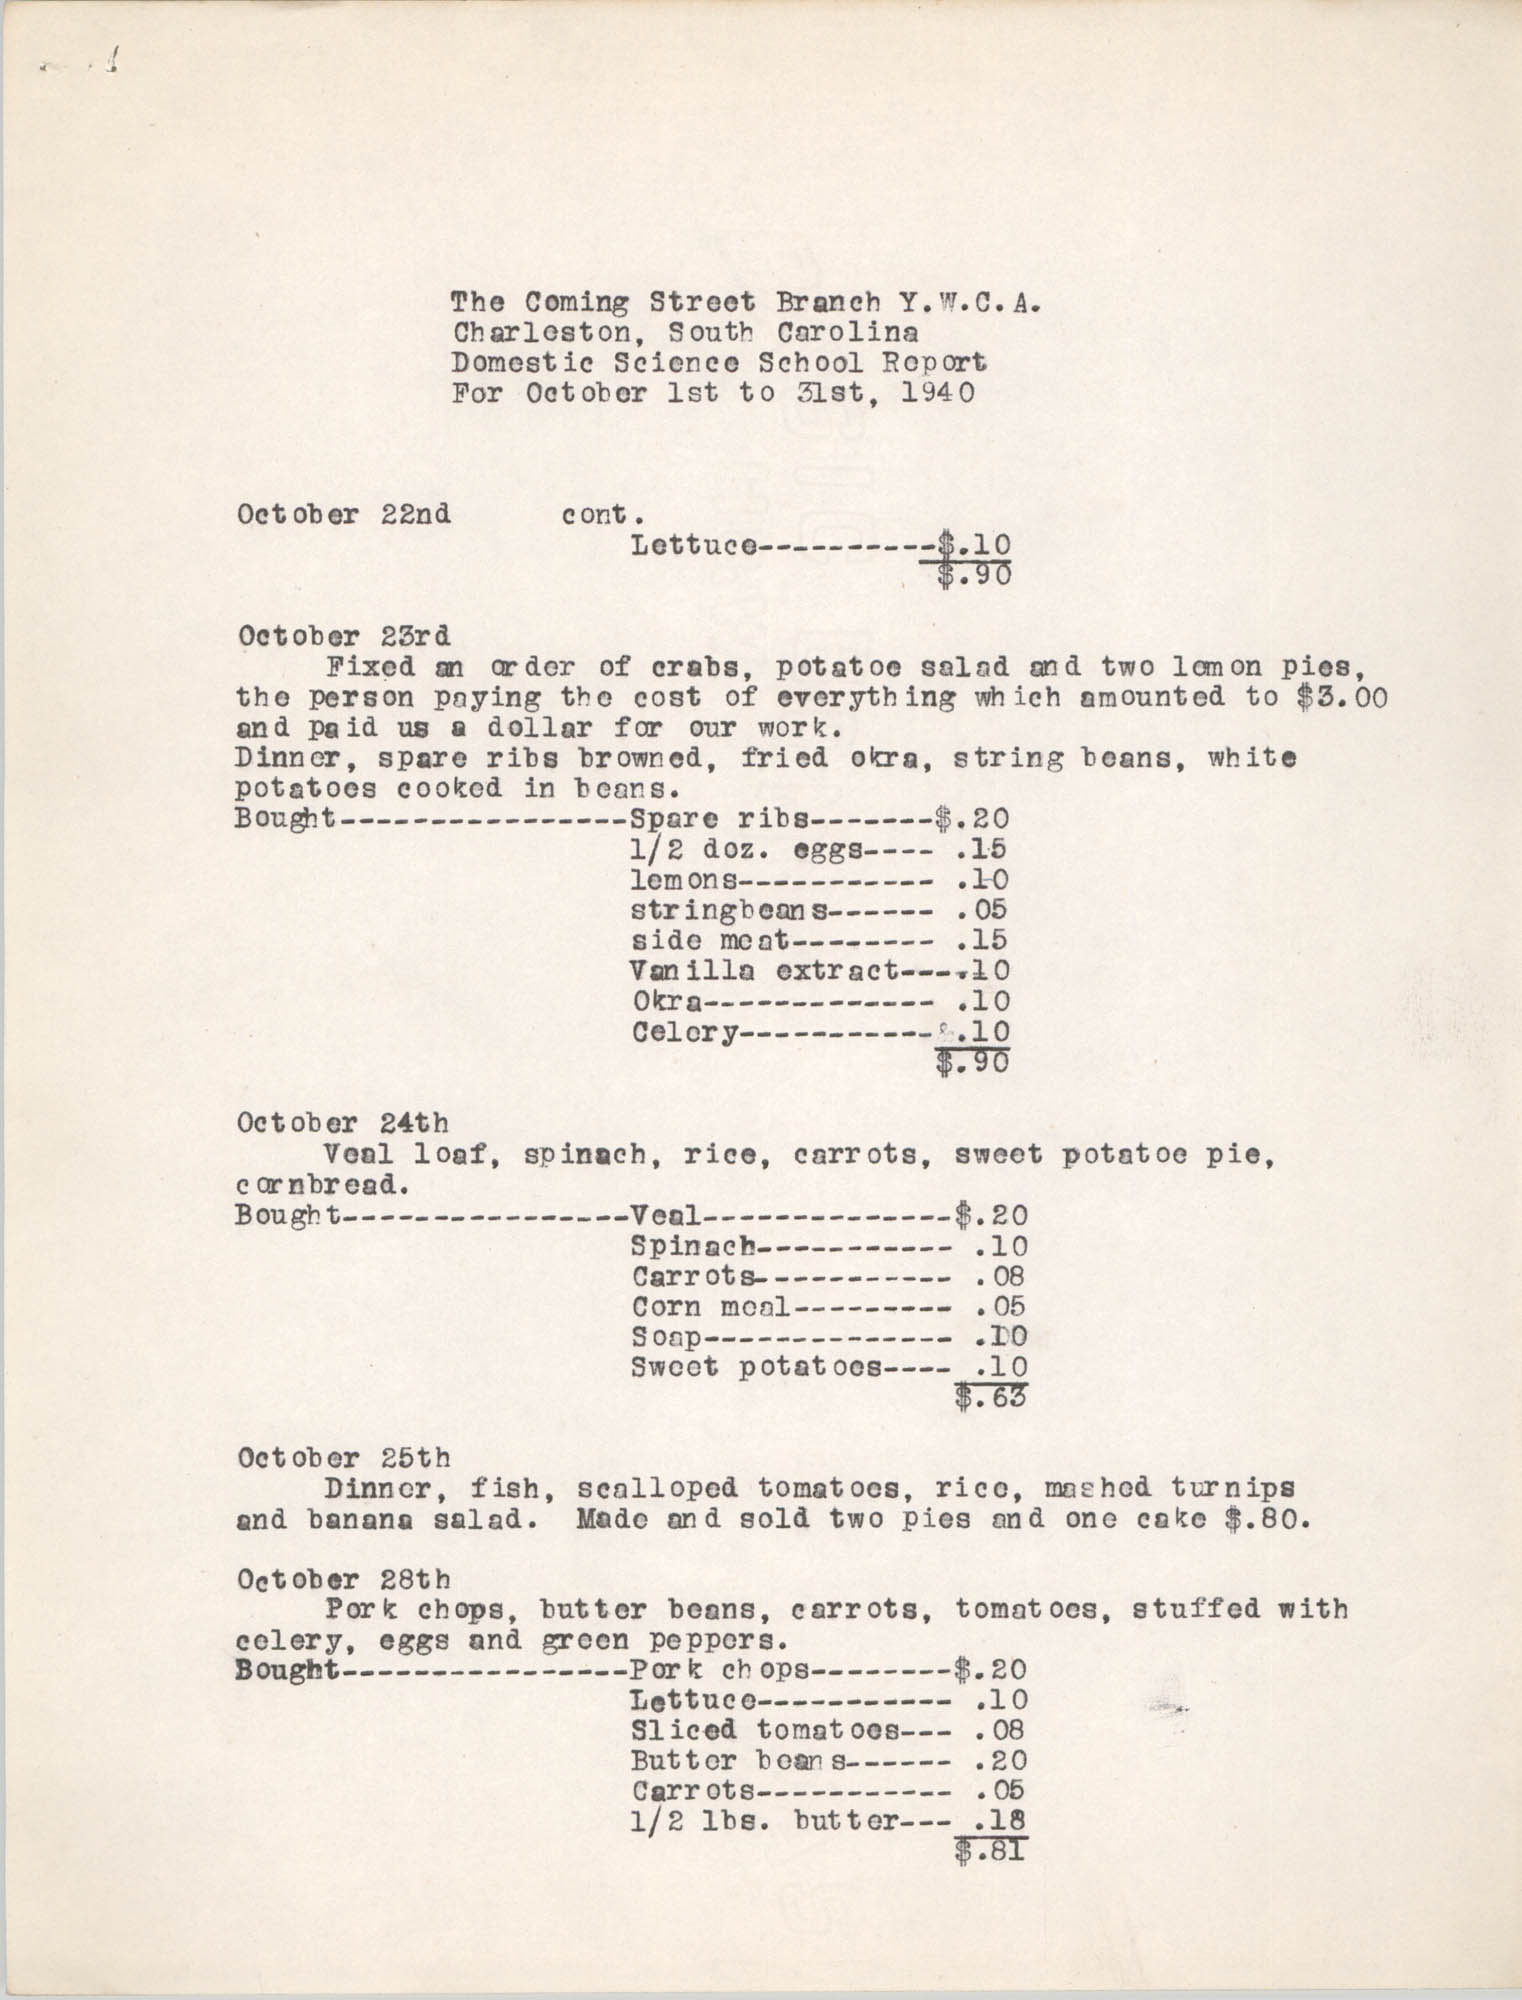 Monthly Report for the Coming Street Y.W.C.A., Domestic Science School, October 1940, Page 5